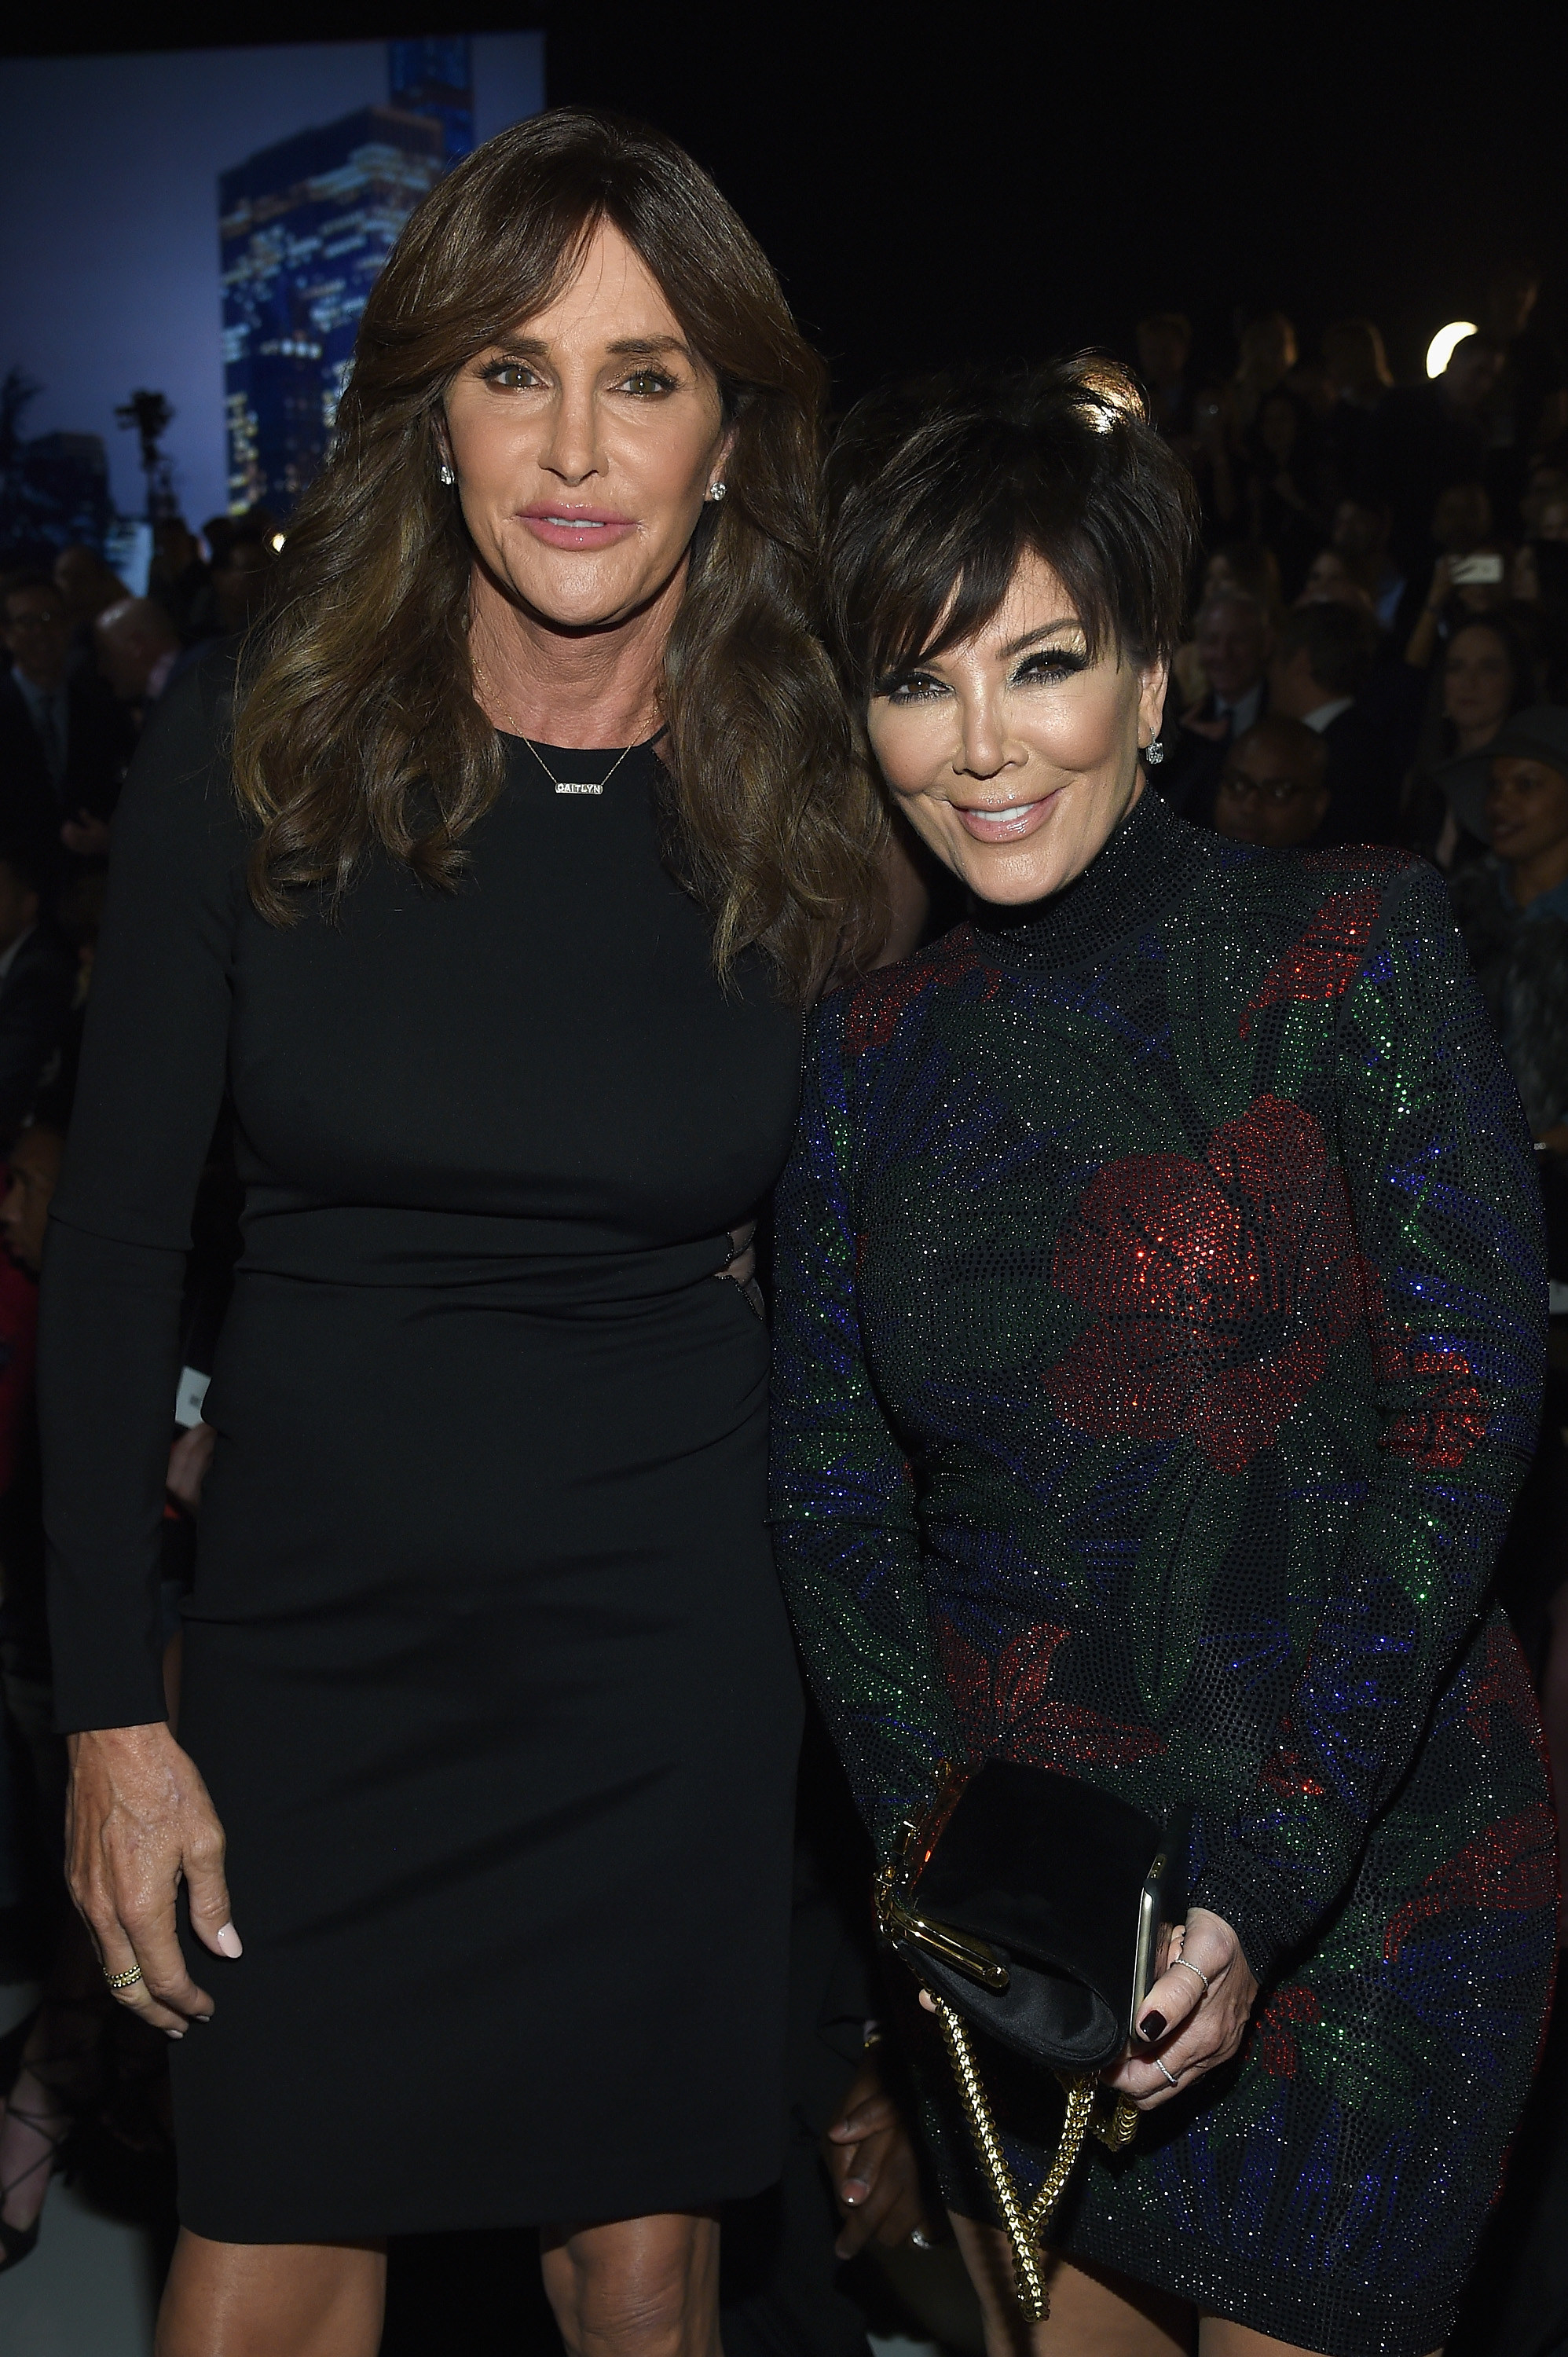 Caitlyn and Kris Jenner at the Victoria's Secret Fashion Show in 2015